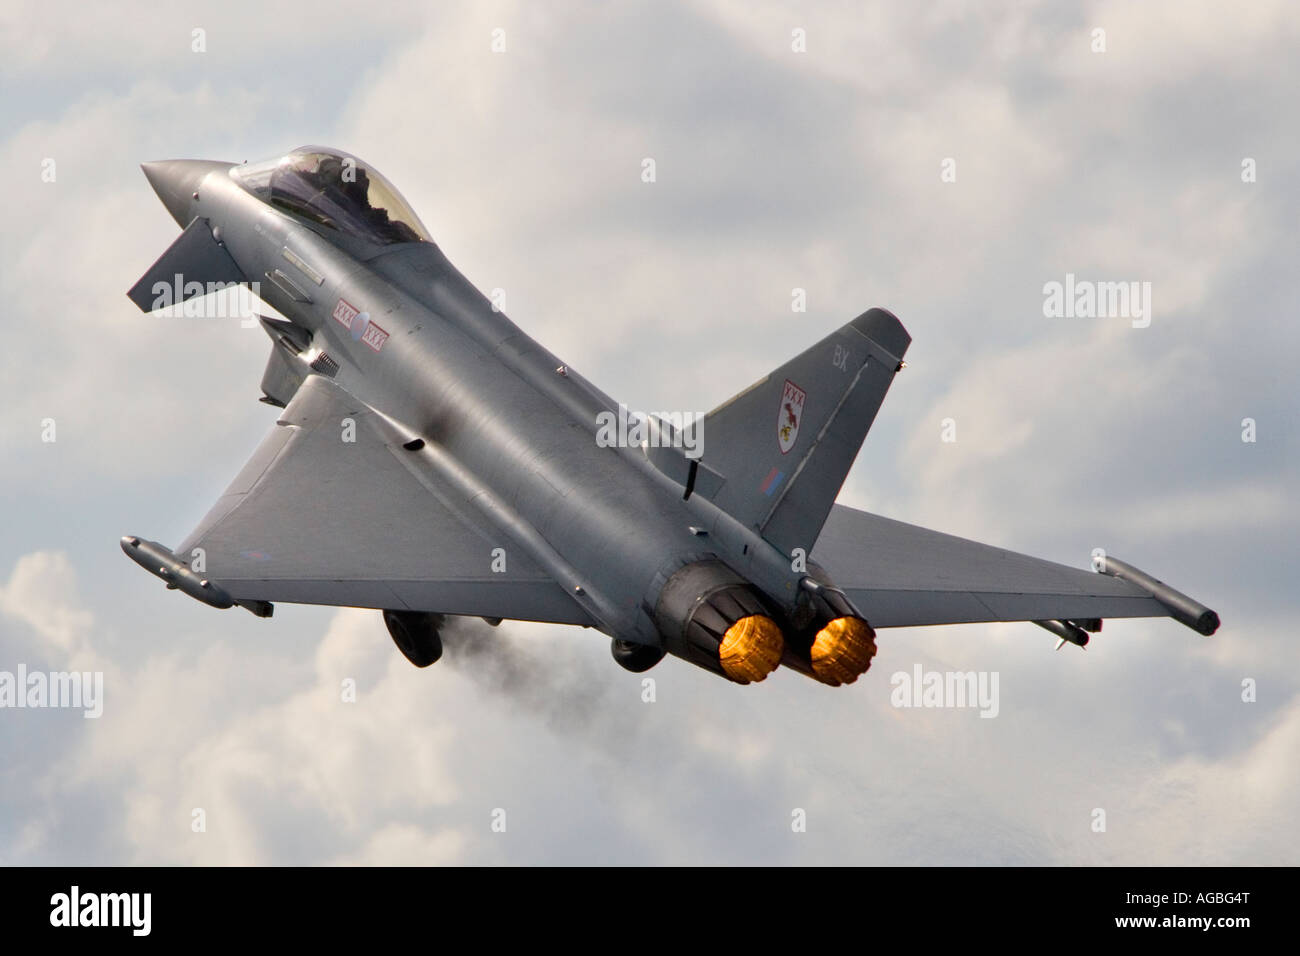 Royal Air Force Eurofighter Typhoon T1 twin-engine multi role canard delta strike fighter aircraft taking off with - Stock Image